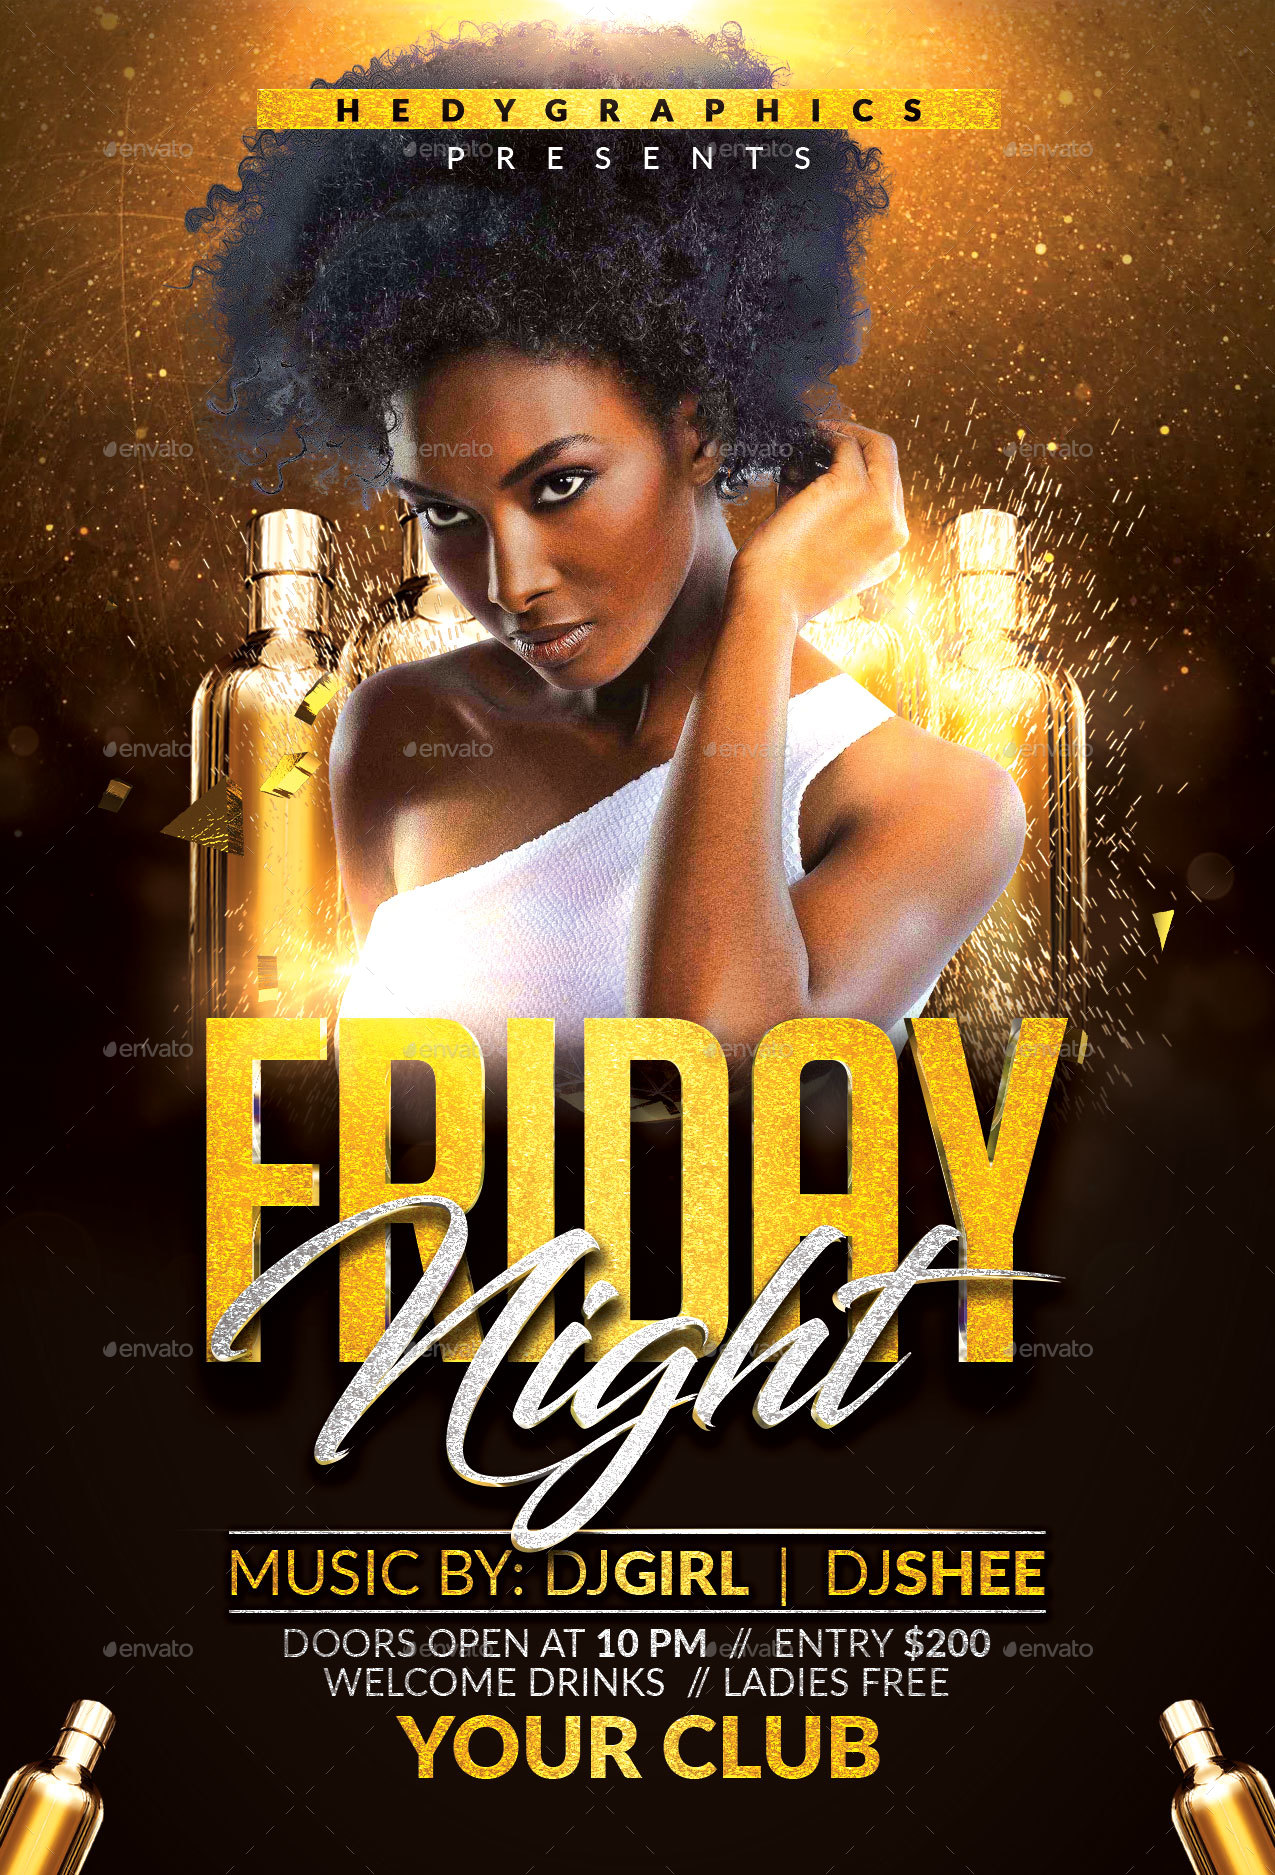 friday night flyer by hedygraphics